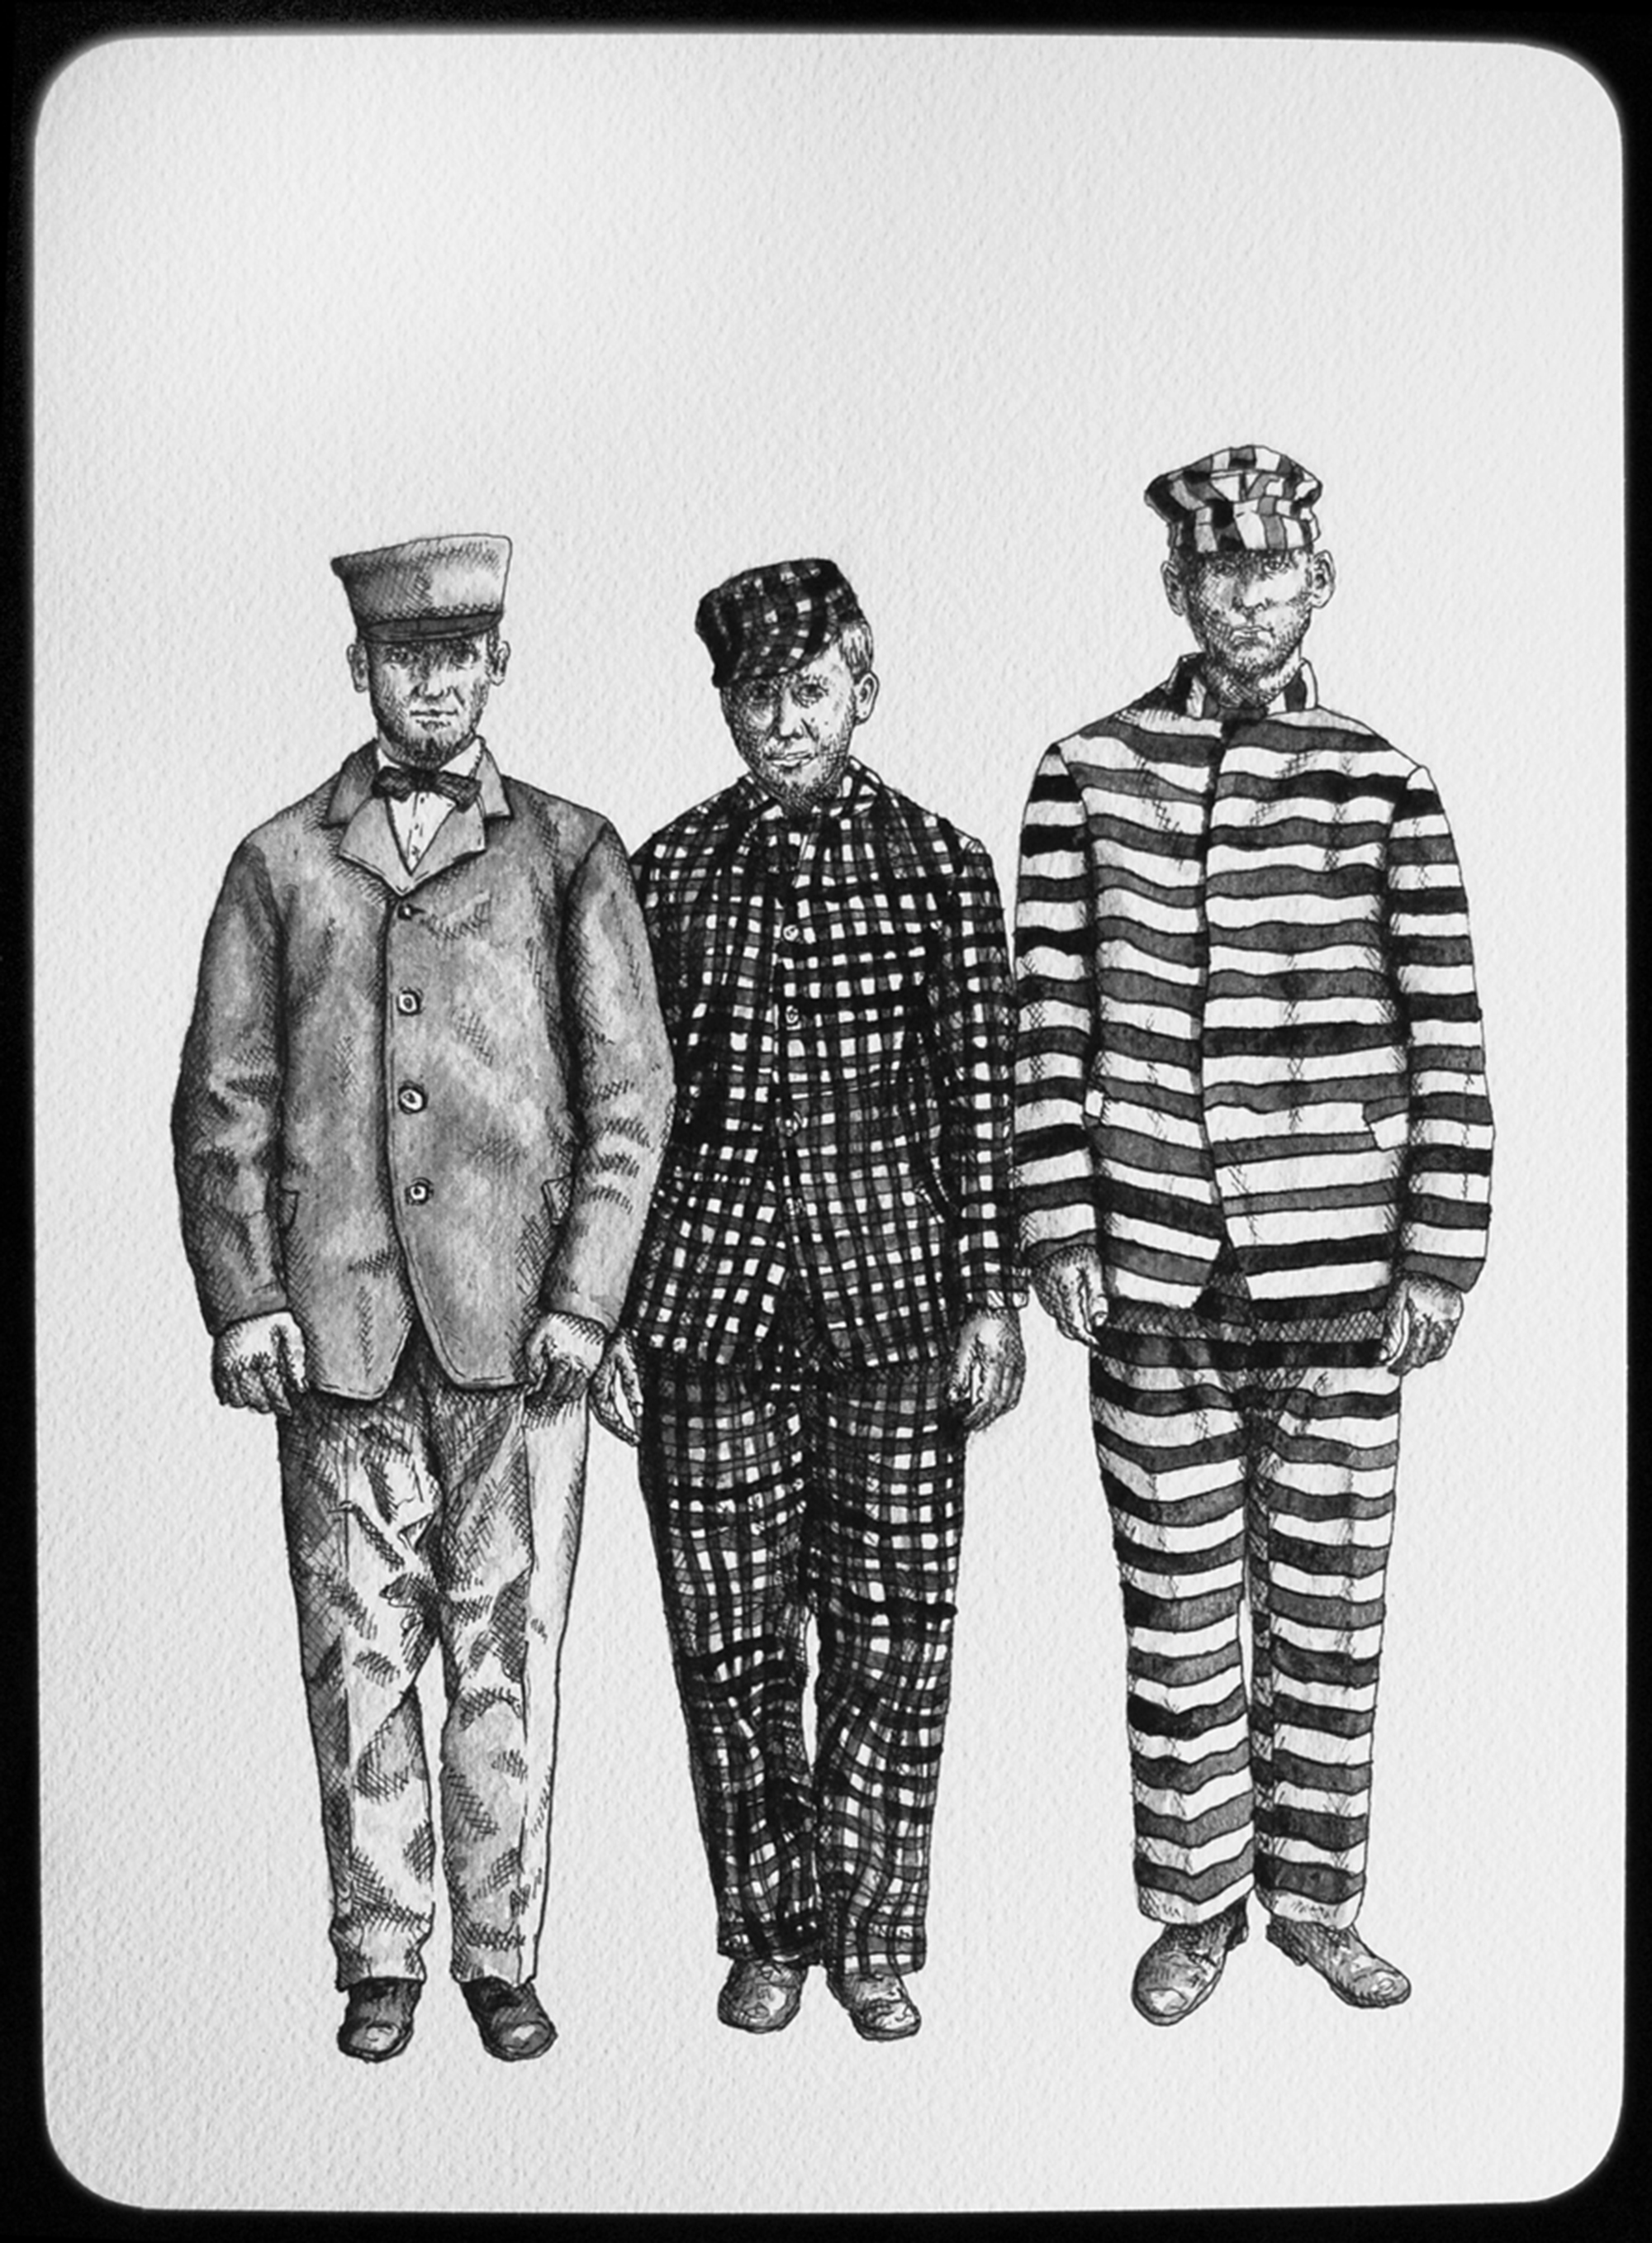 Prisoners at Alcatraz, about 1920, 2011  |  11 x 8 inches  |  archival ink and gouache on paper